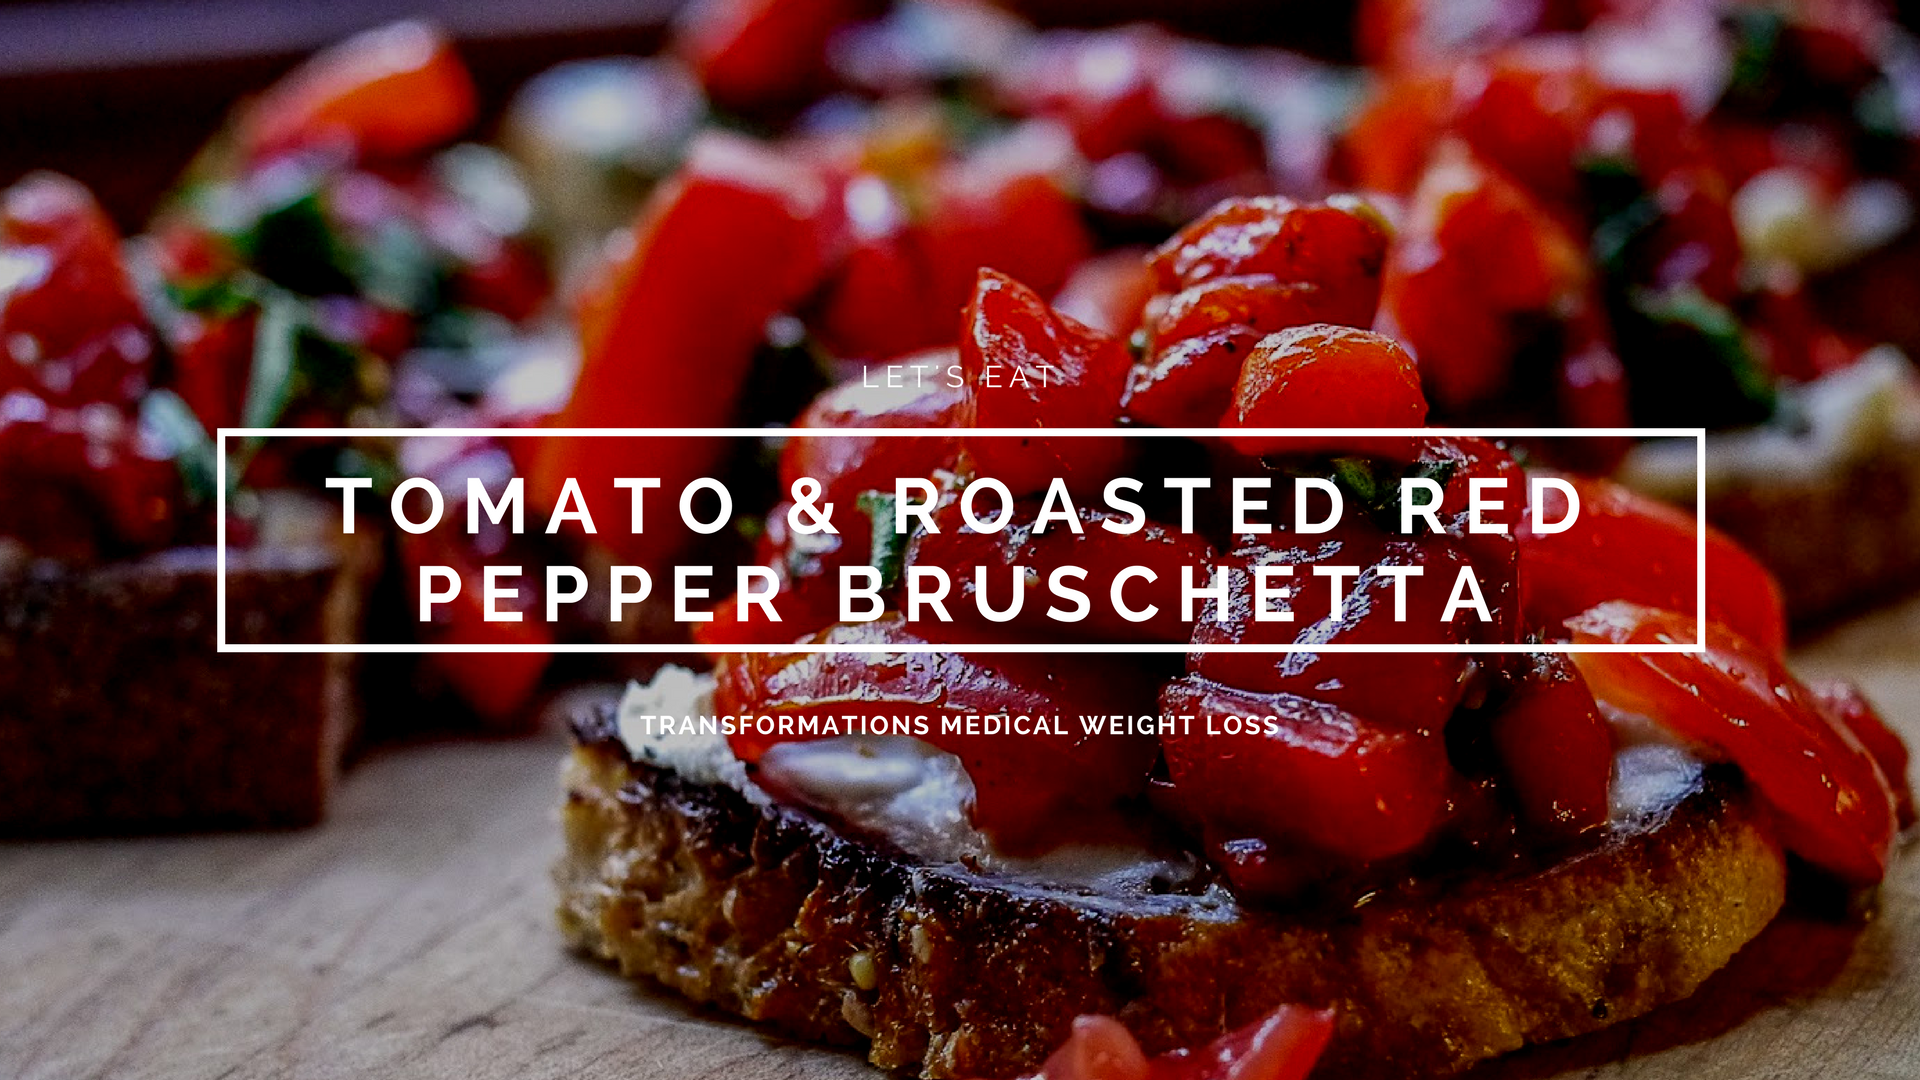 Tomato and Roasted Red Pepper Bruschetta